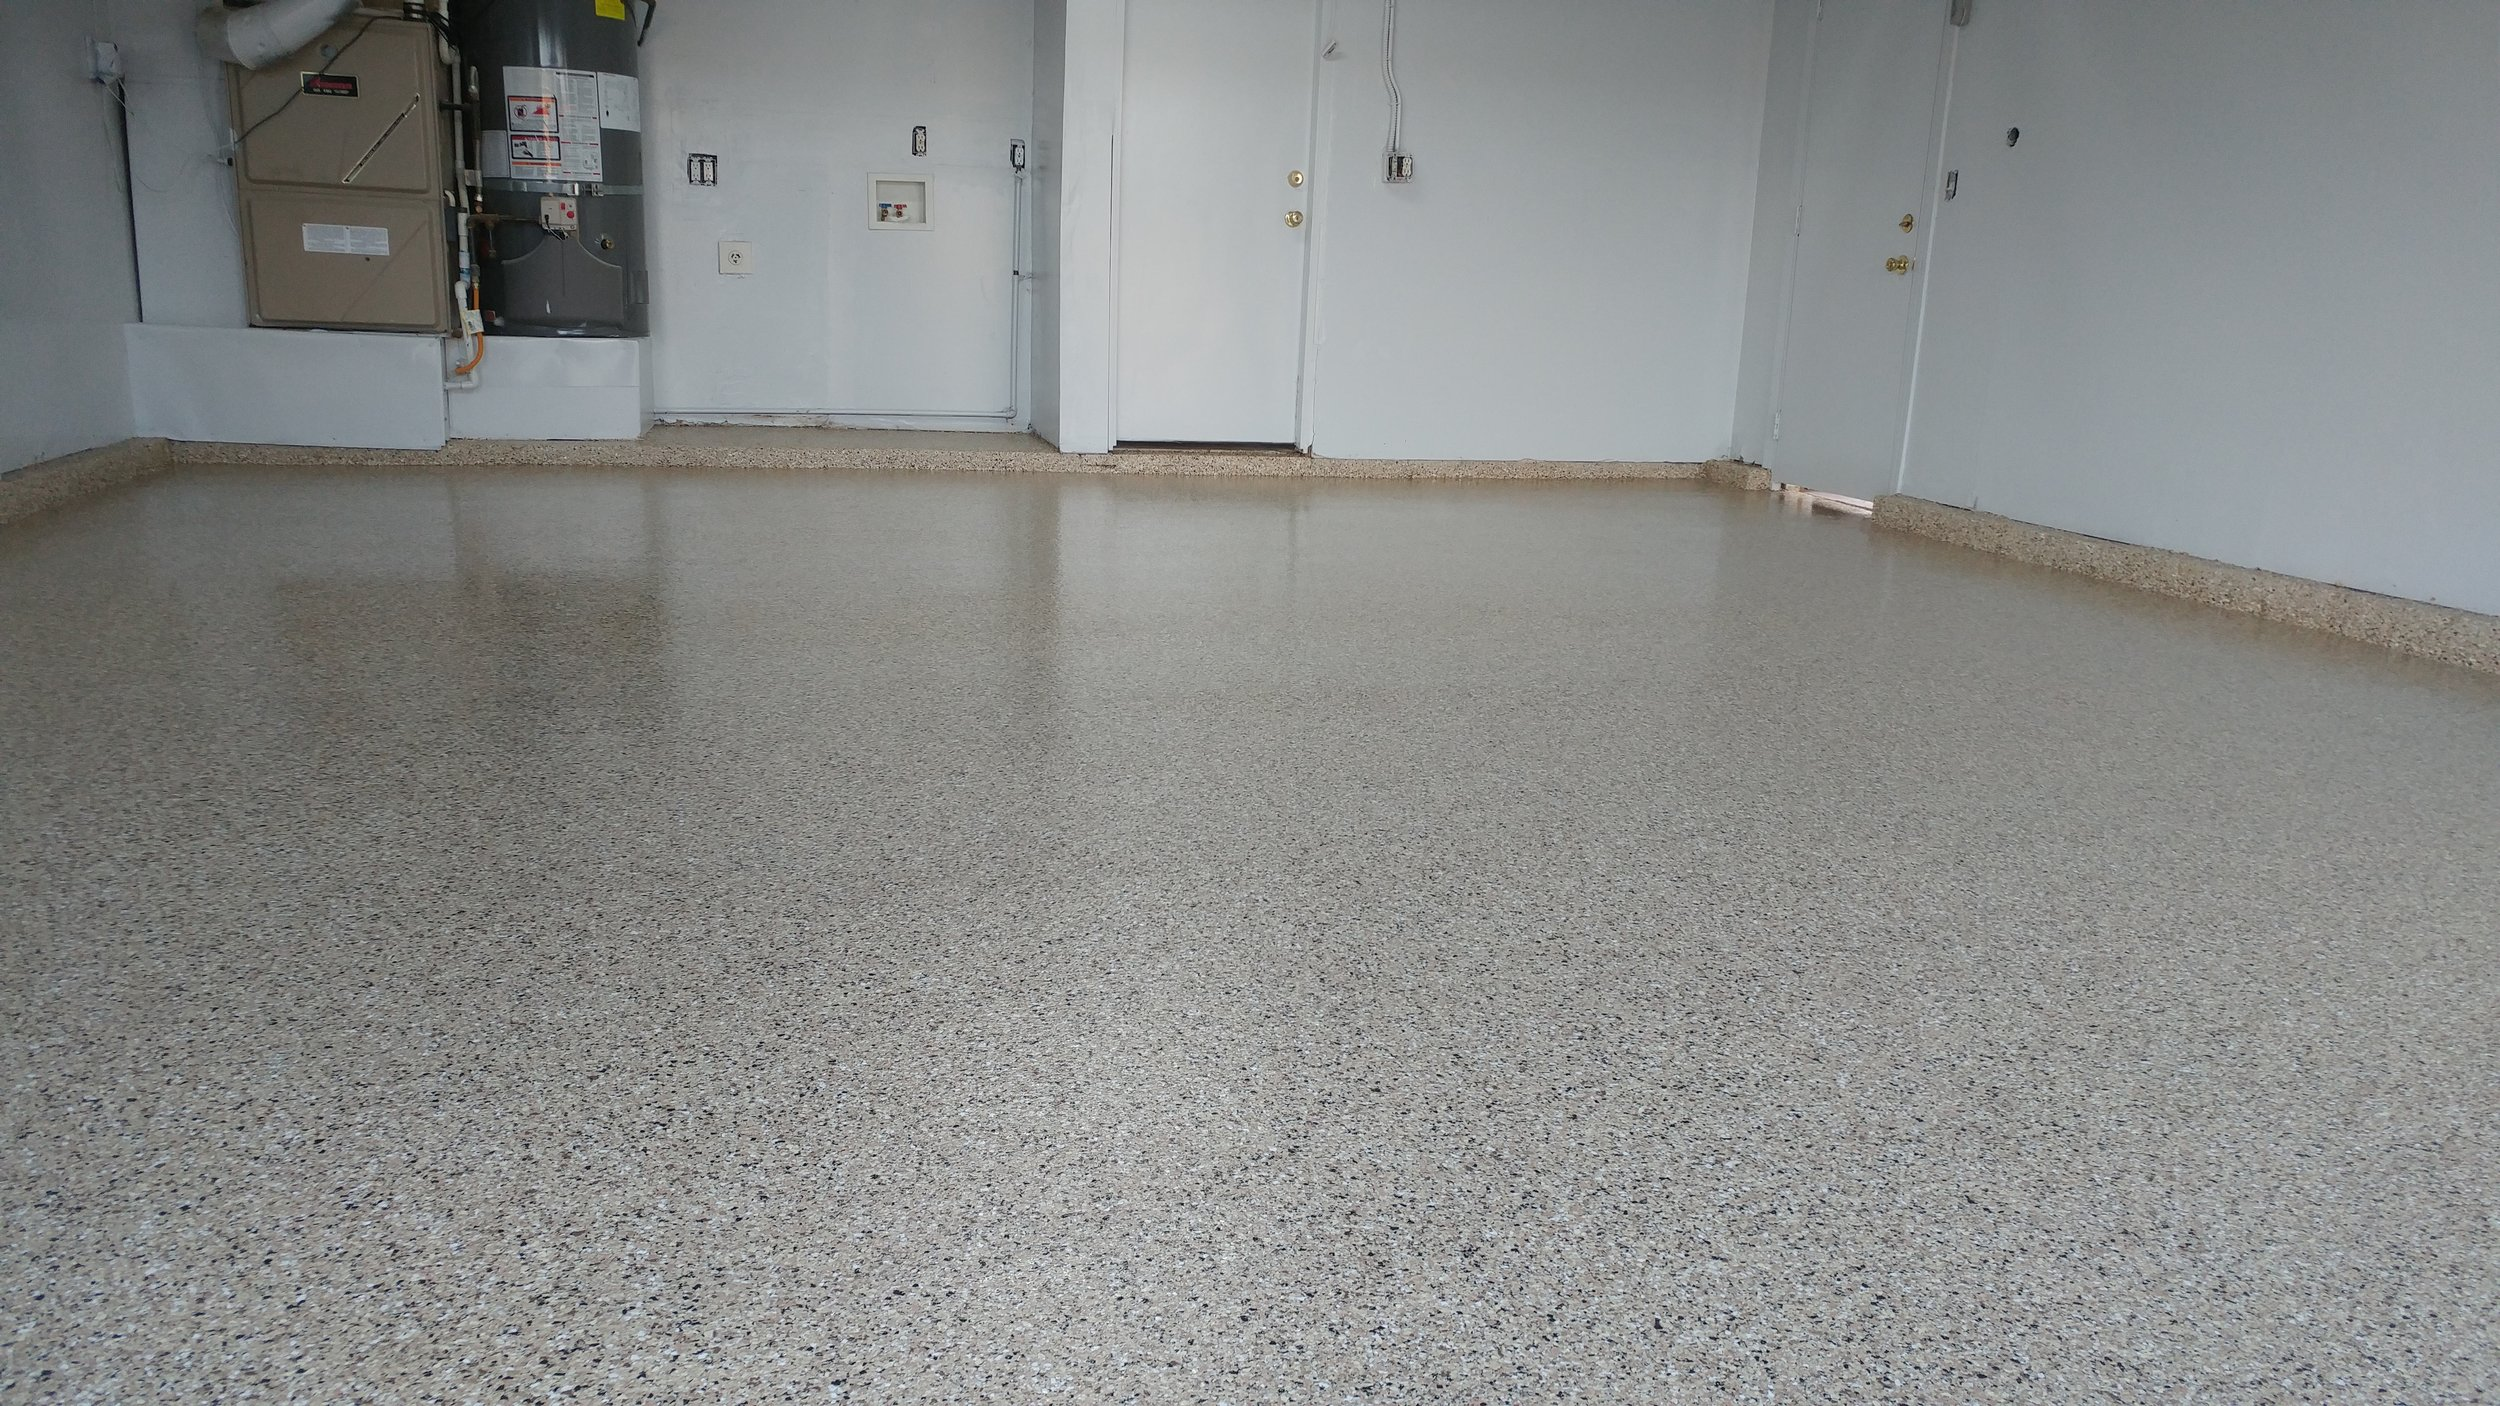 Older Home in Sacramento Transforms their Garage with a New Epoxy Floor